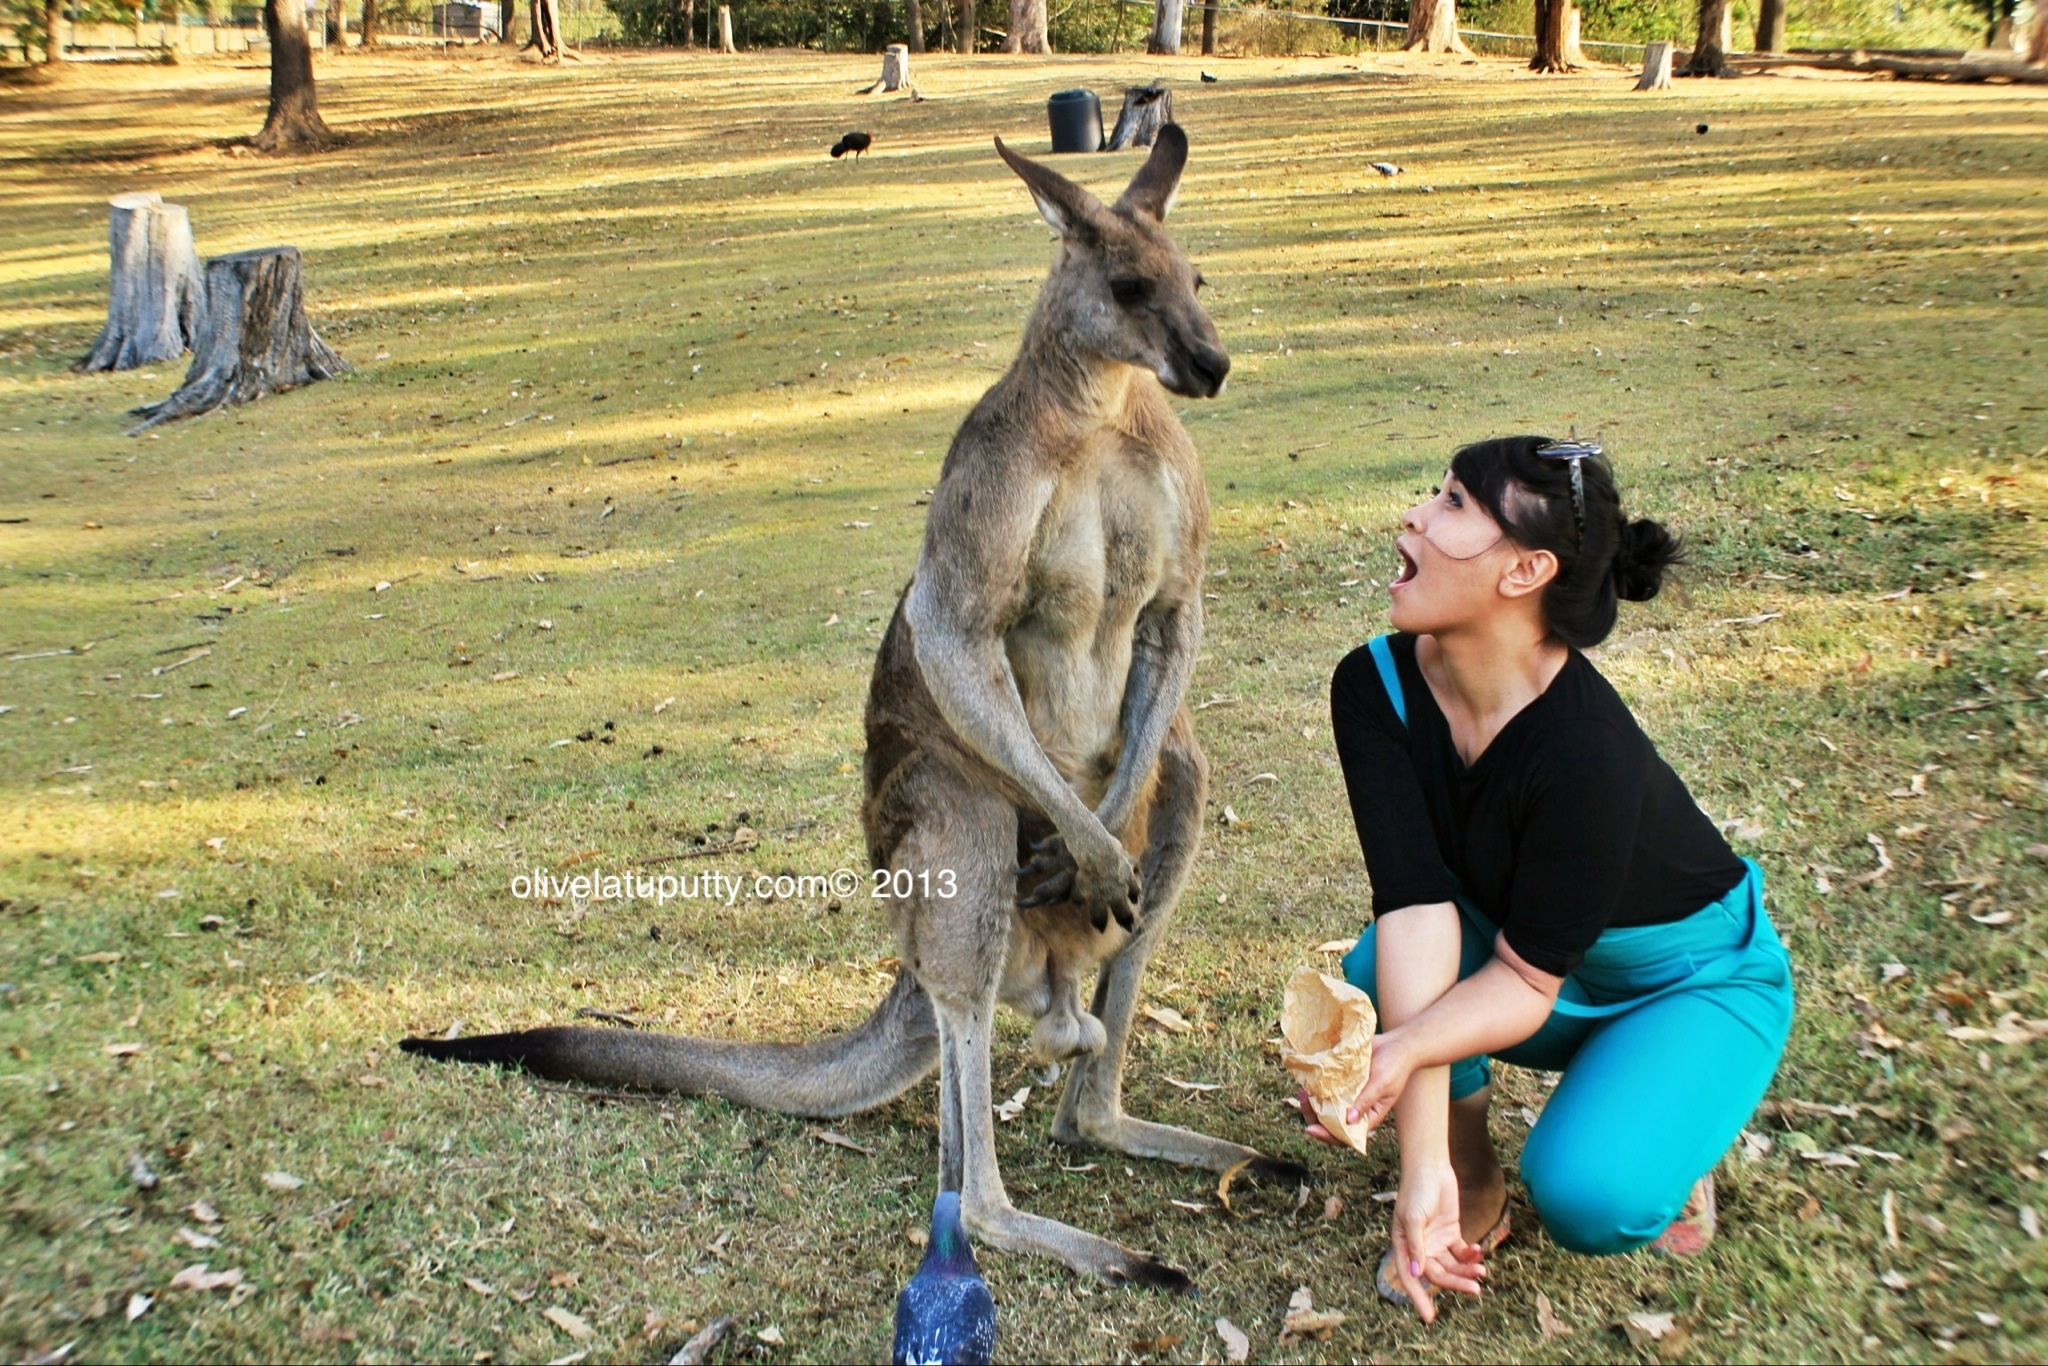 an analysis of the kangaroo environmental adaptation in australia The national climate resilience and adaptation strategy sets out how australia is managing climate risks for the benefit of the community, economy and environment.